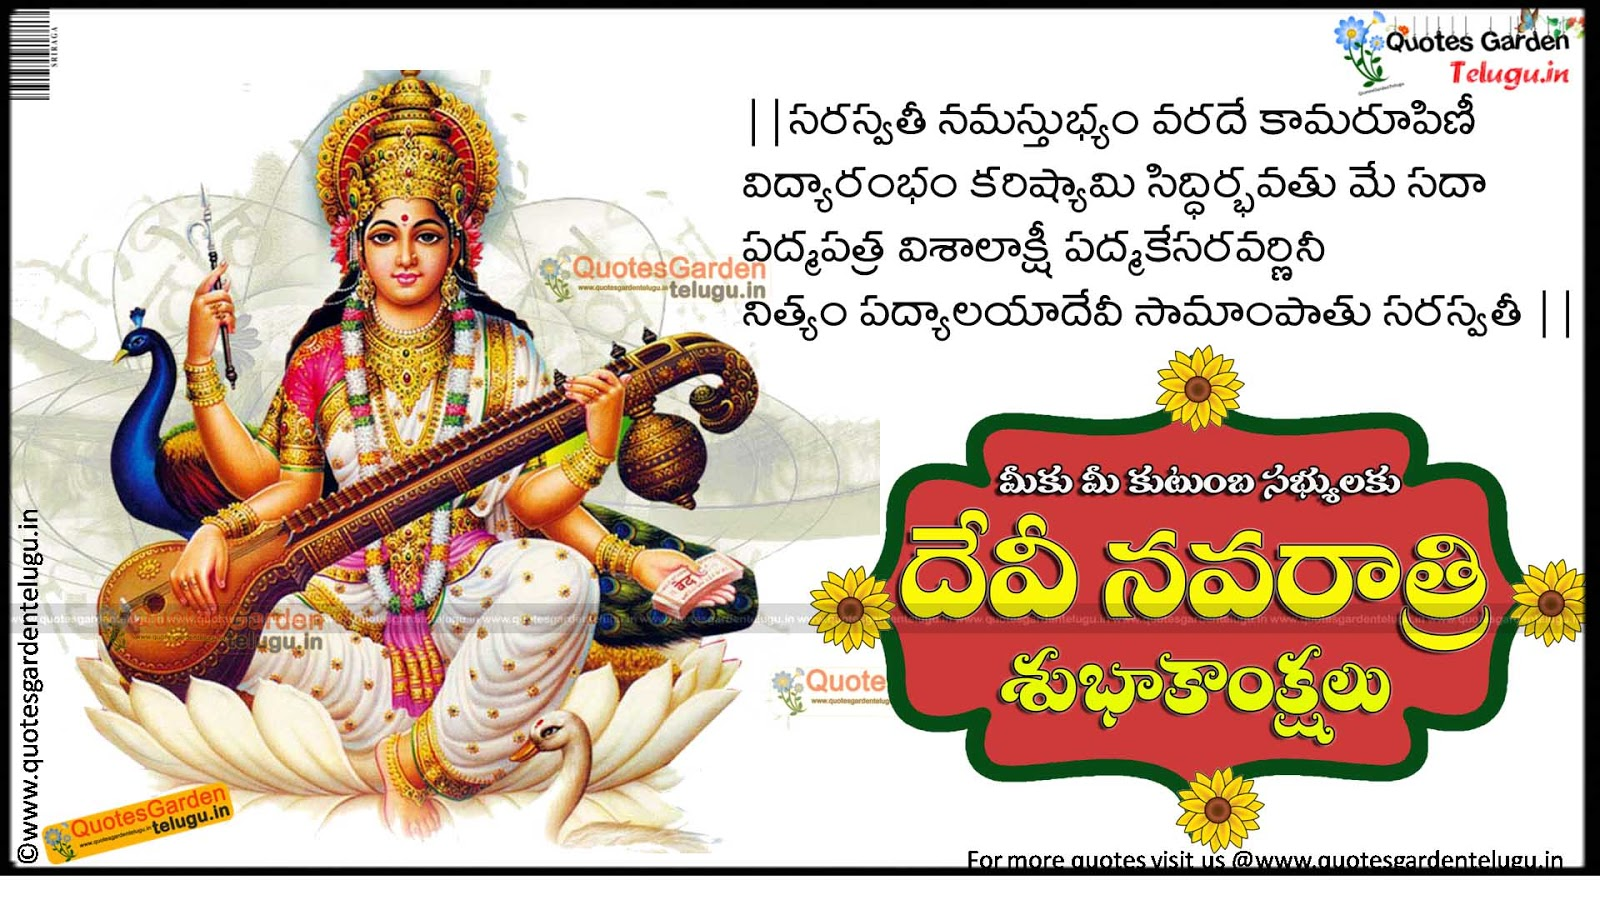 Essay on dasara festival in telugu research paper academic service essay on dasara festival in telugu m4hsunfo